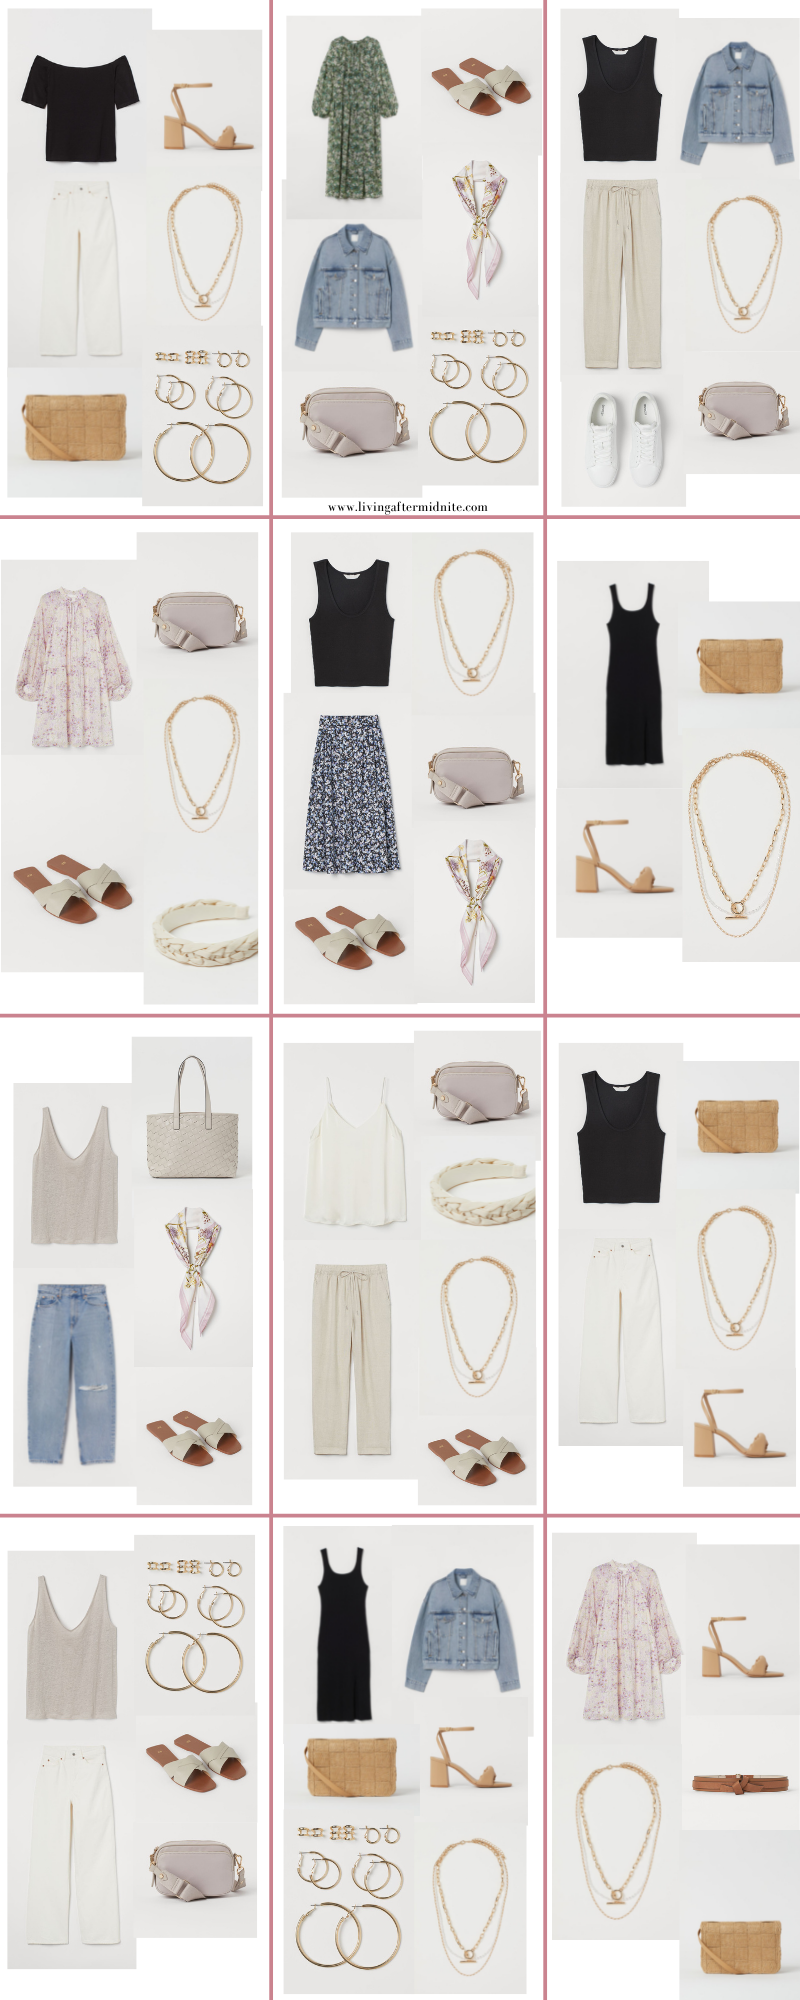 Affordable H&M Spring Capsule Wardrobe | 27 Pieces, 60+ Outfits | How to Build a Capsule Wardrobe | H&M Spring Clothes | Outfit Inspiration | Spring Fashion | 60 Warm Weather Outfit Ideas | Spring Vacation Packing Guide | Spring Outfits 2021 | Summer Outfit Ideas